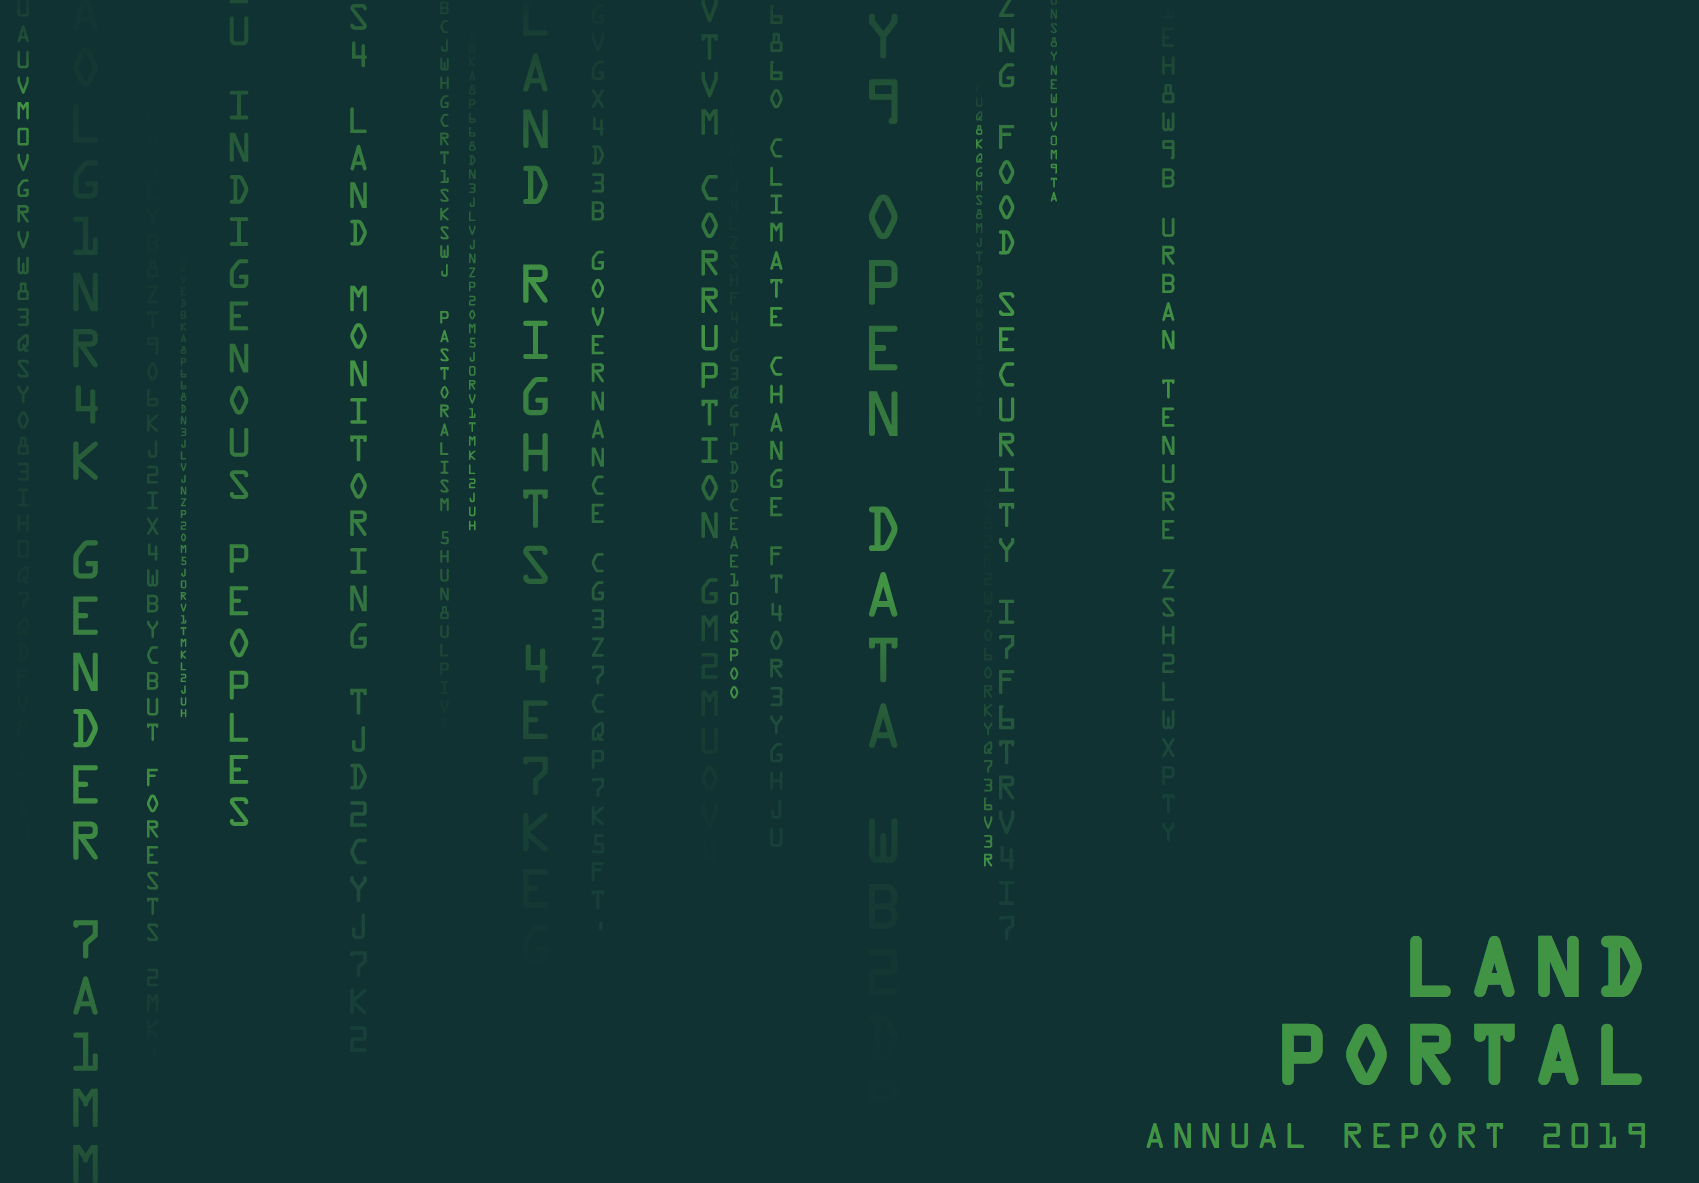 Land Portal Annual Report 2019